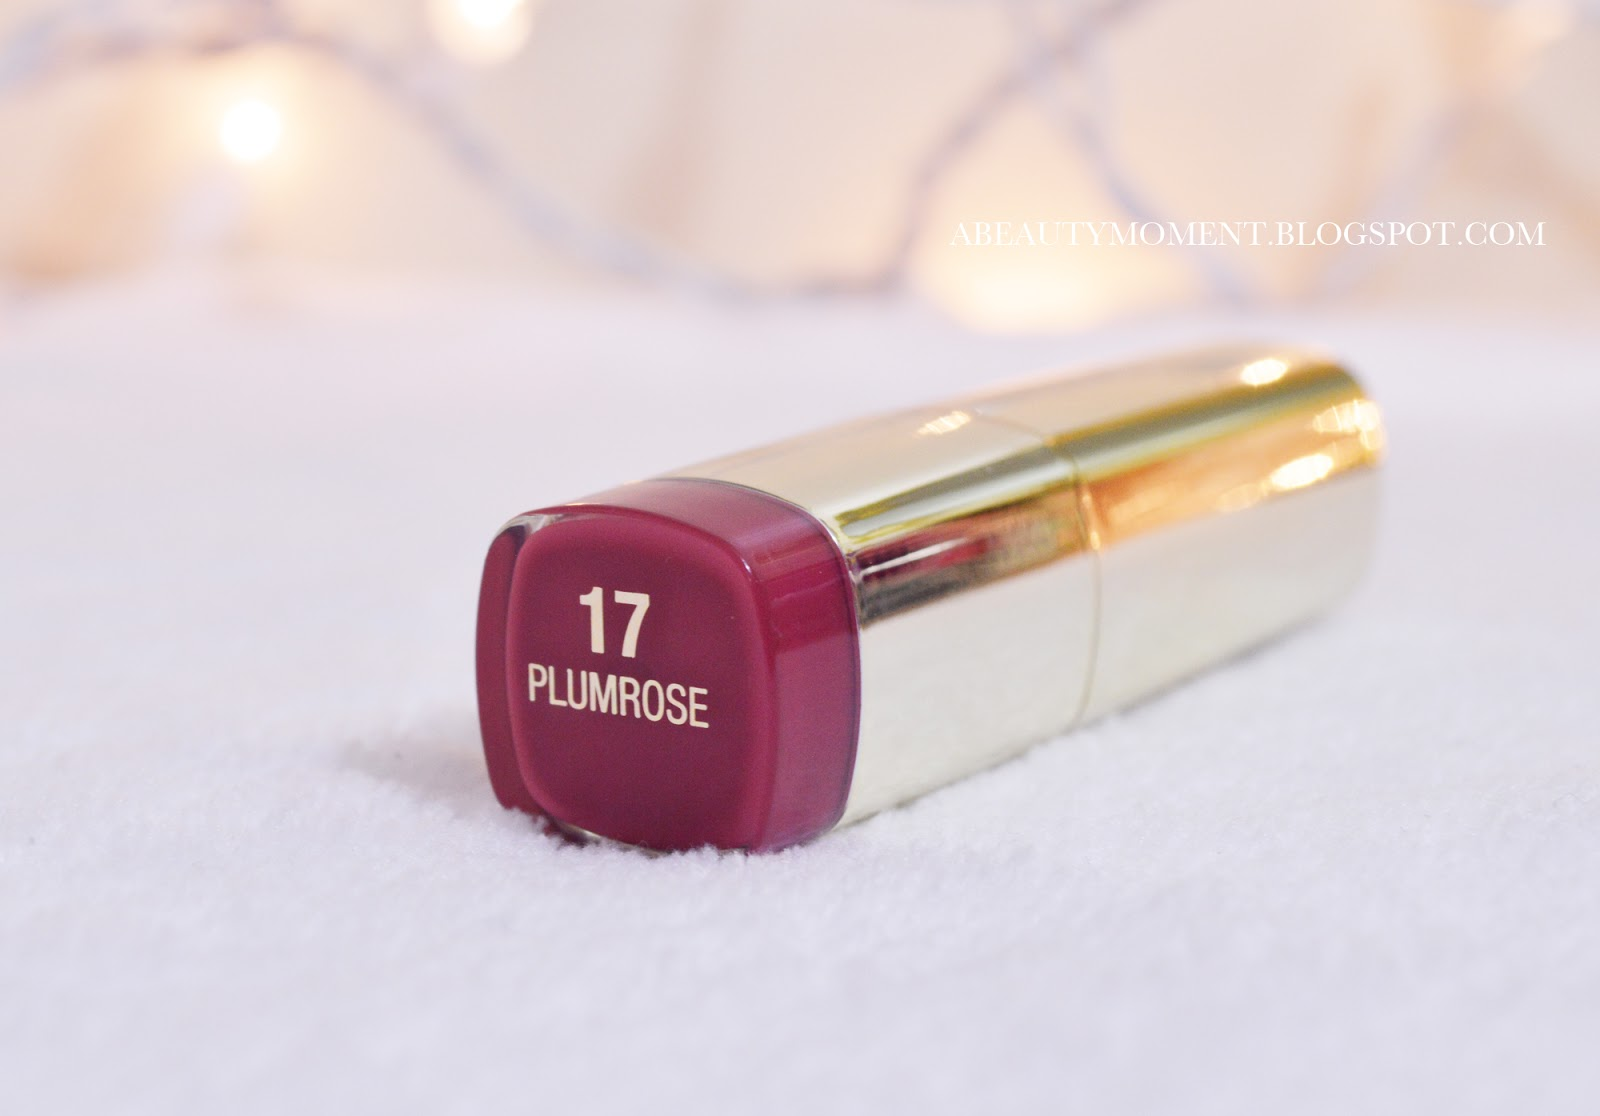 A Beauty Moment: MILANI COLOR STATEMENT LIPSTICK IN PLUMROSE